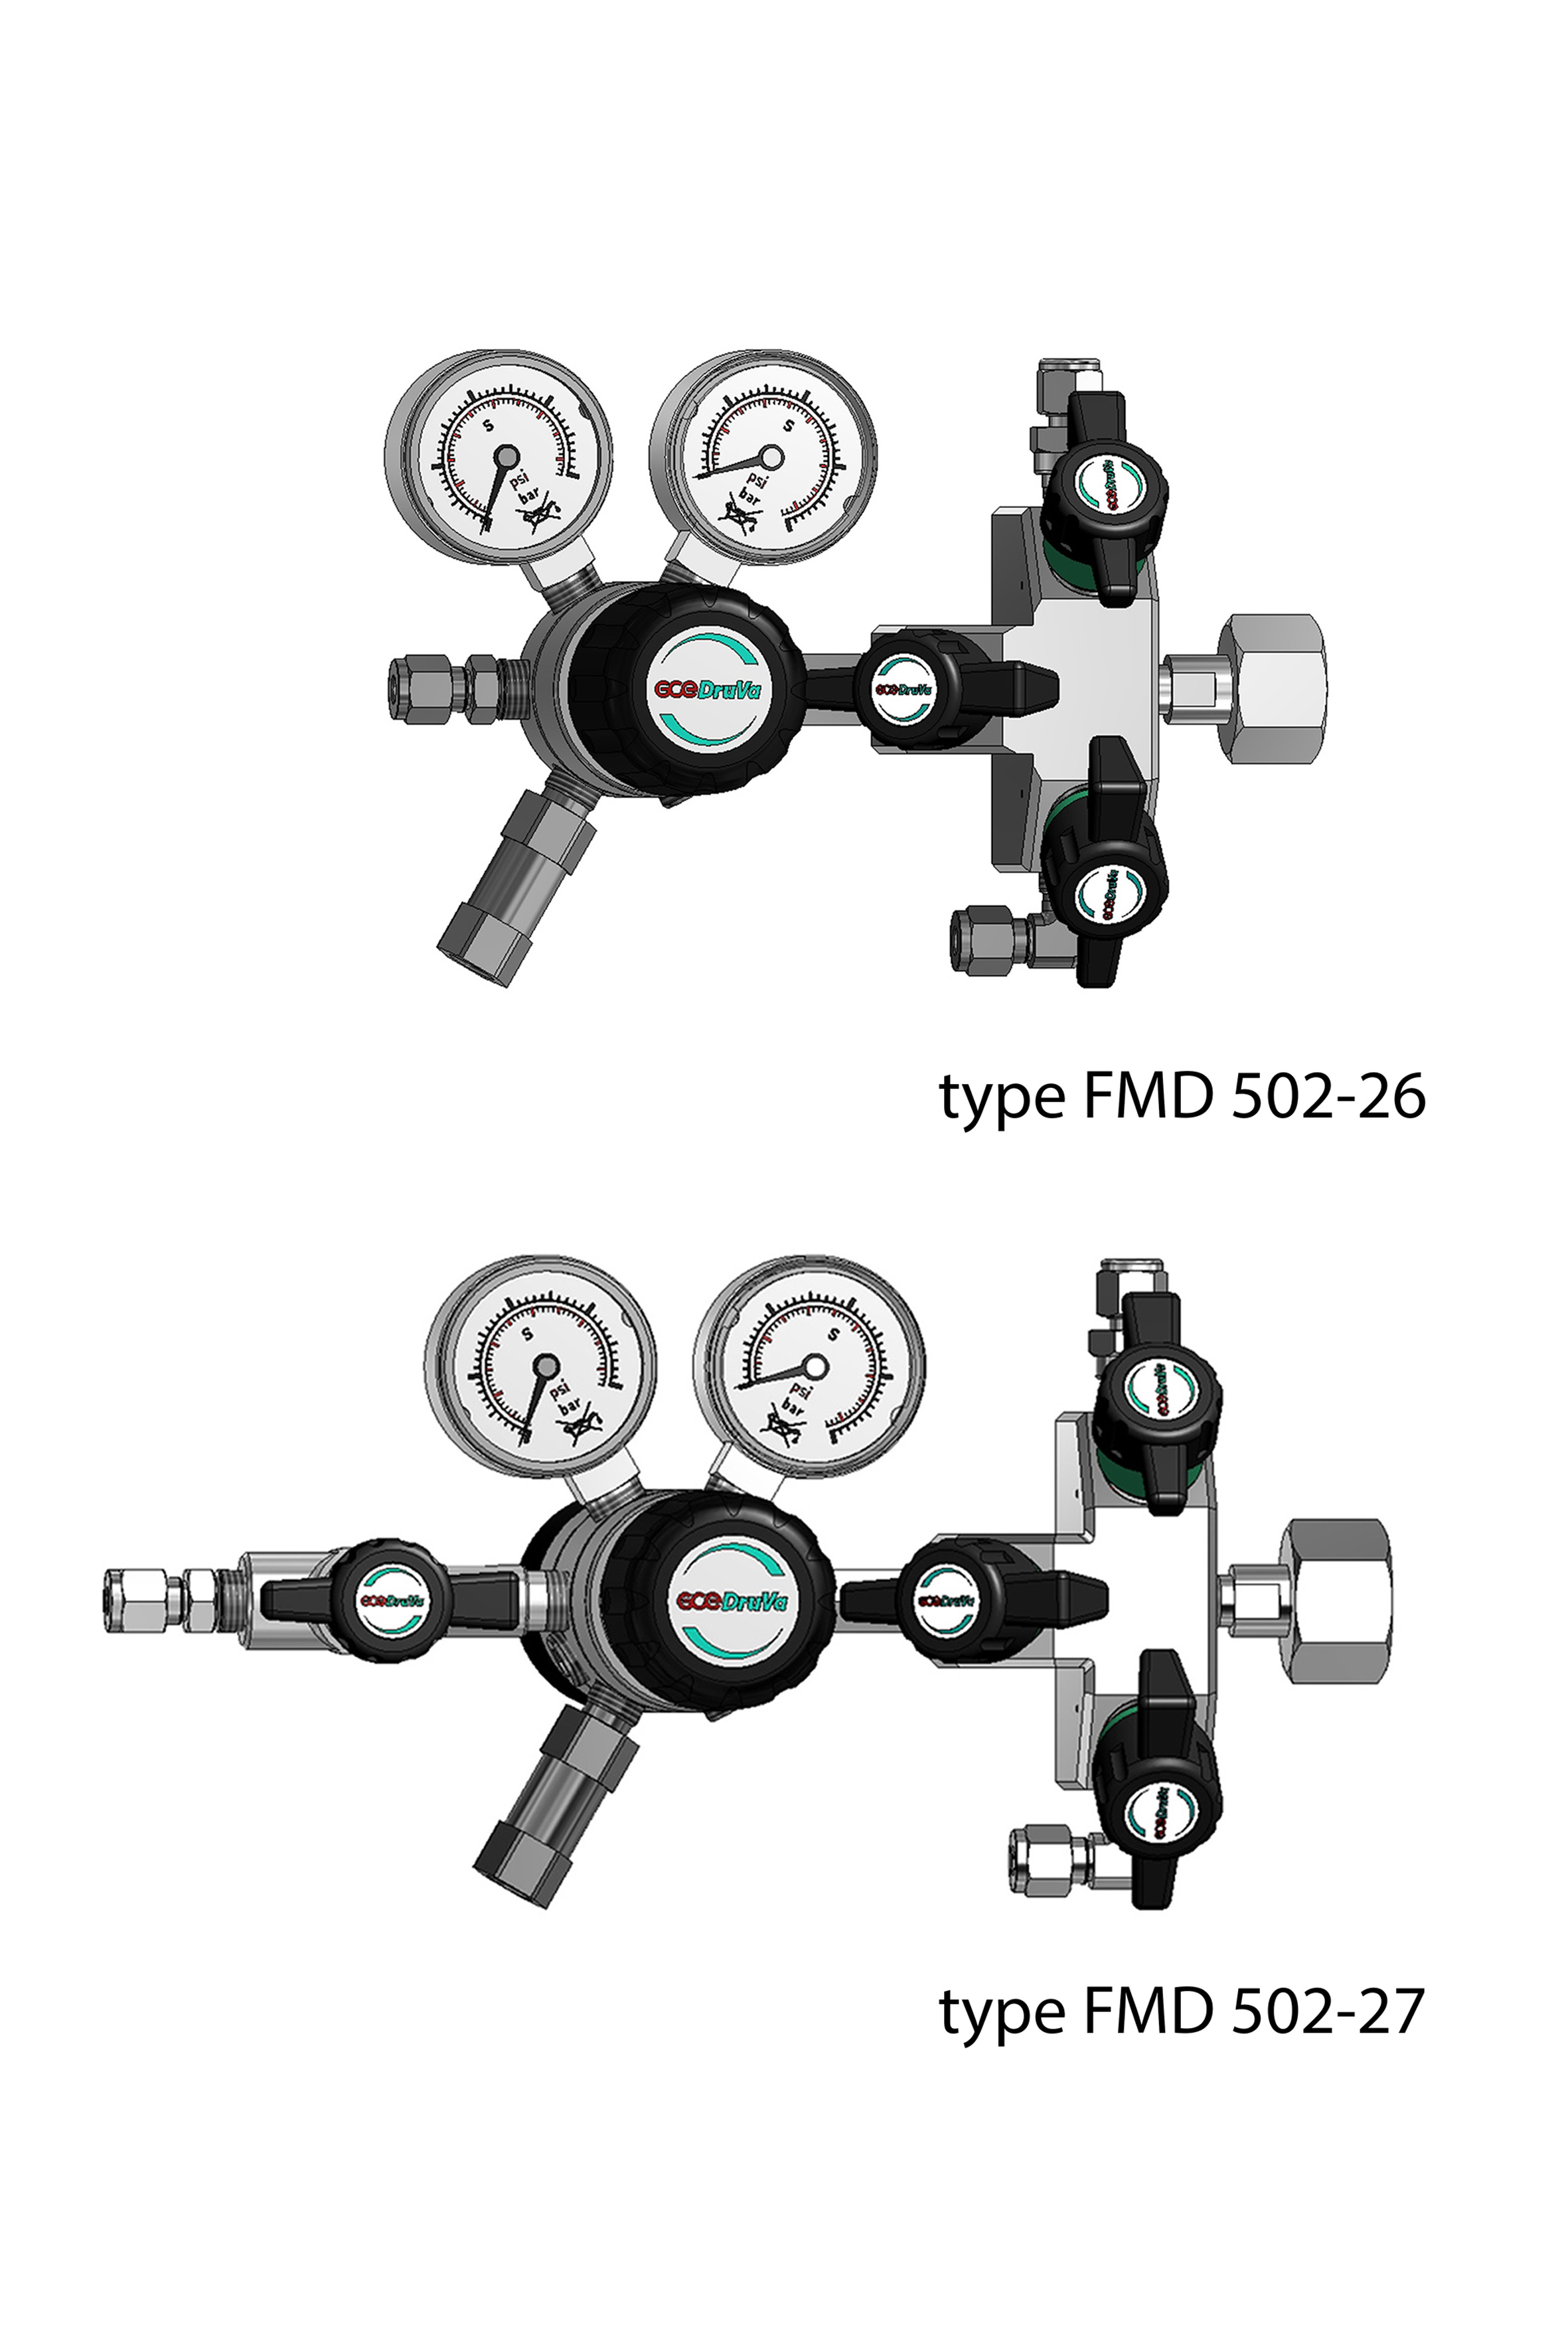 FMD 502 2 - DUAL STAGE REGULATOR 6.0 INERT PURGING page image